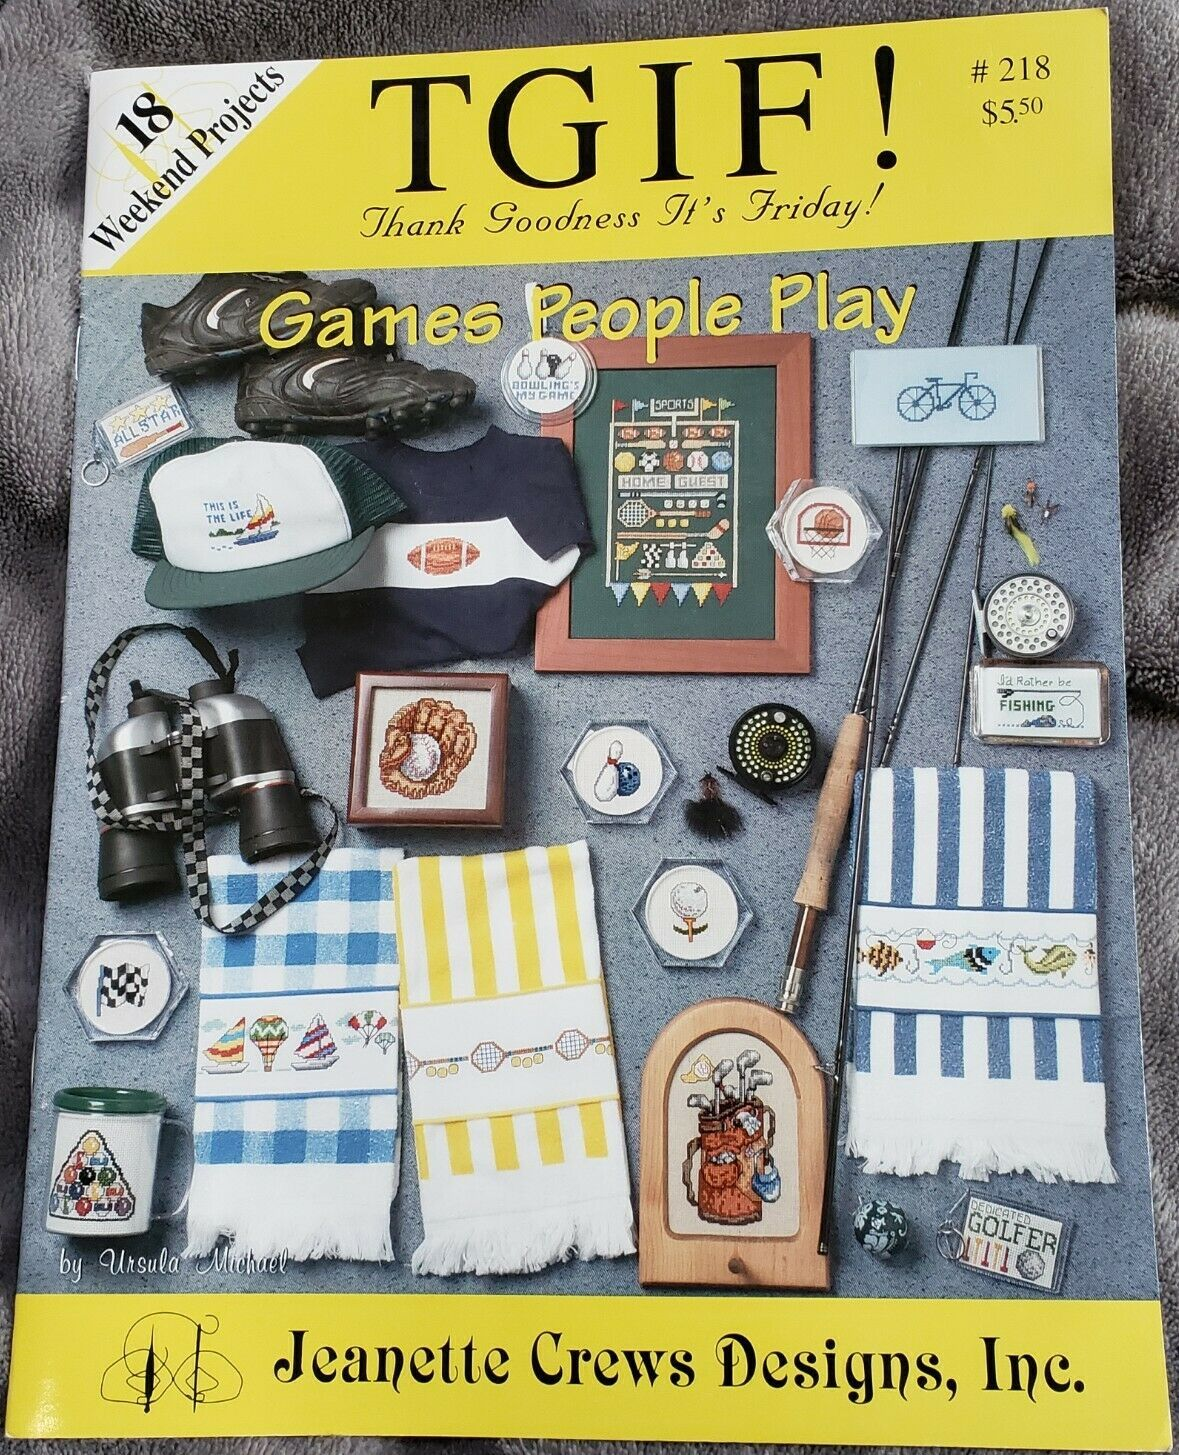 TGIF Games People Play 18 Hobby Cross Stitch Patterns Book #218 Jeanette Crews